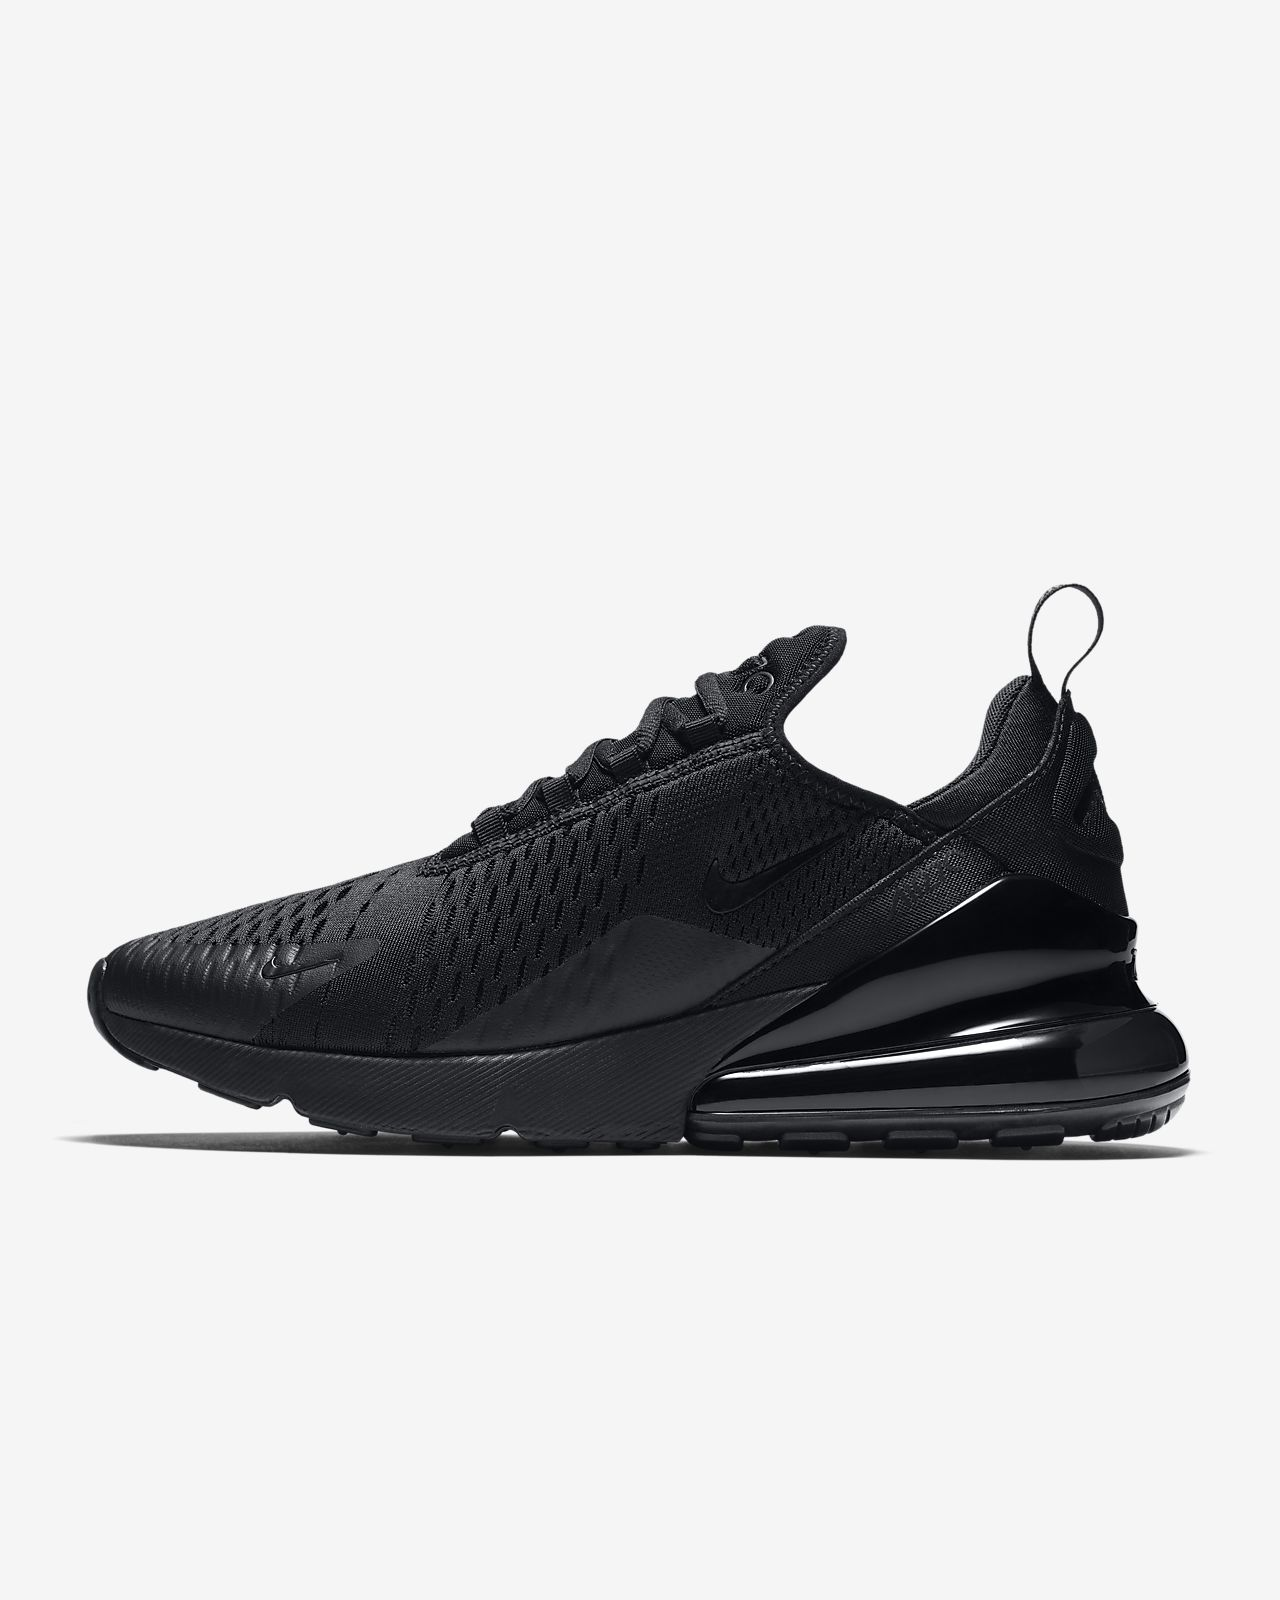 meet 7ca72 915f2 Men s Shoe. Nike Air Max 270